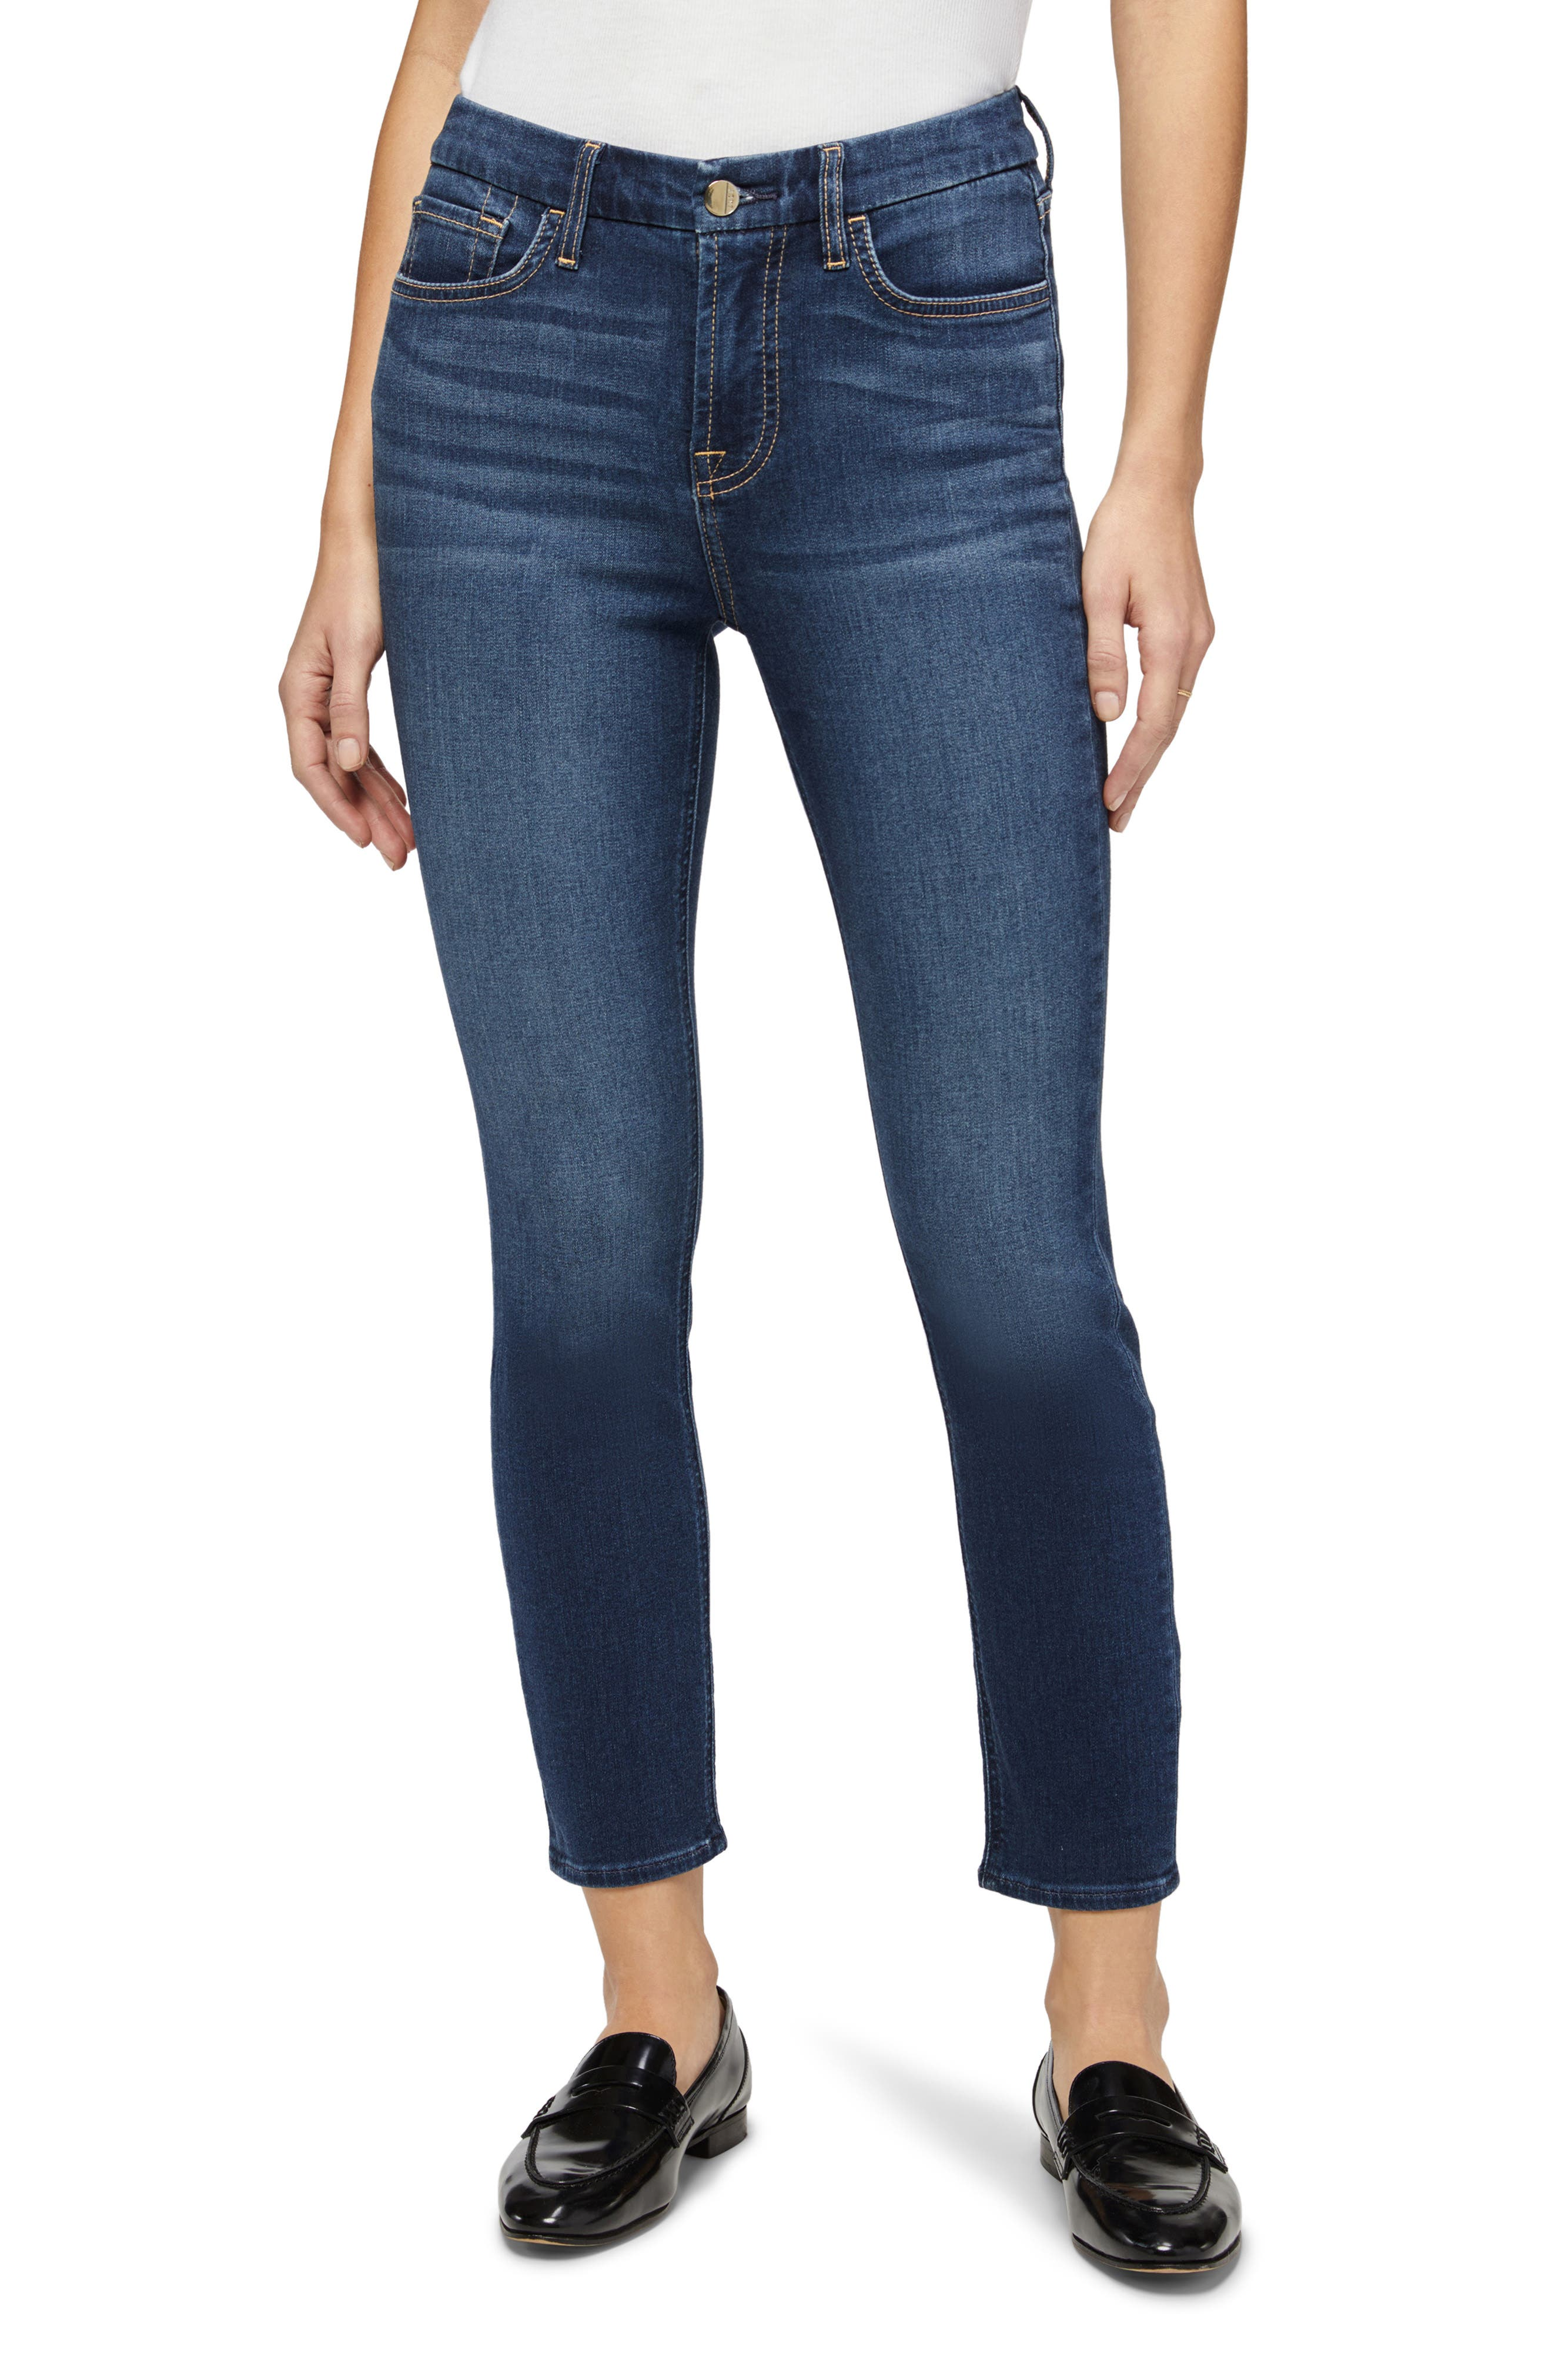 By 7 For All Mankind Ankle Skinny Jeans